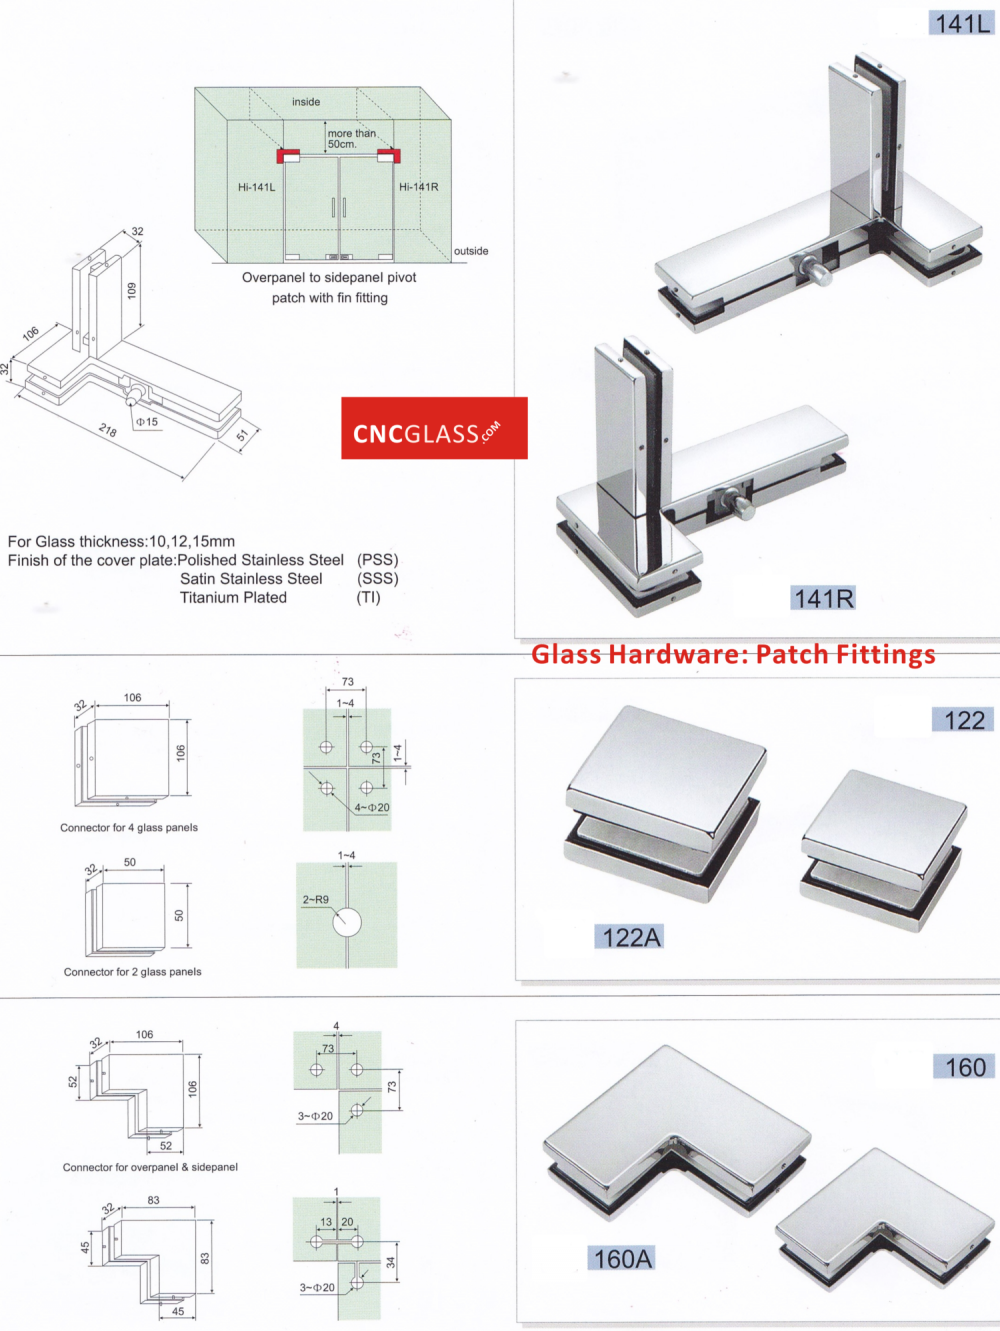 Patch Fittings_conew1